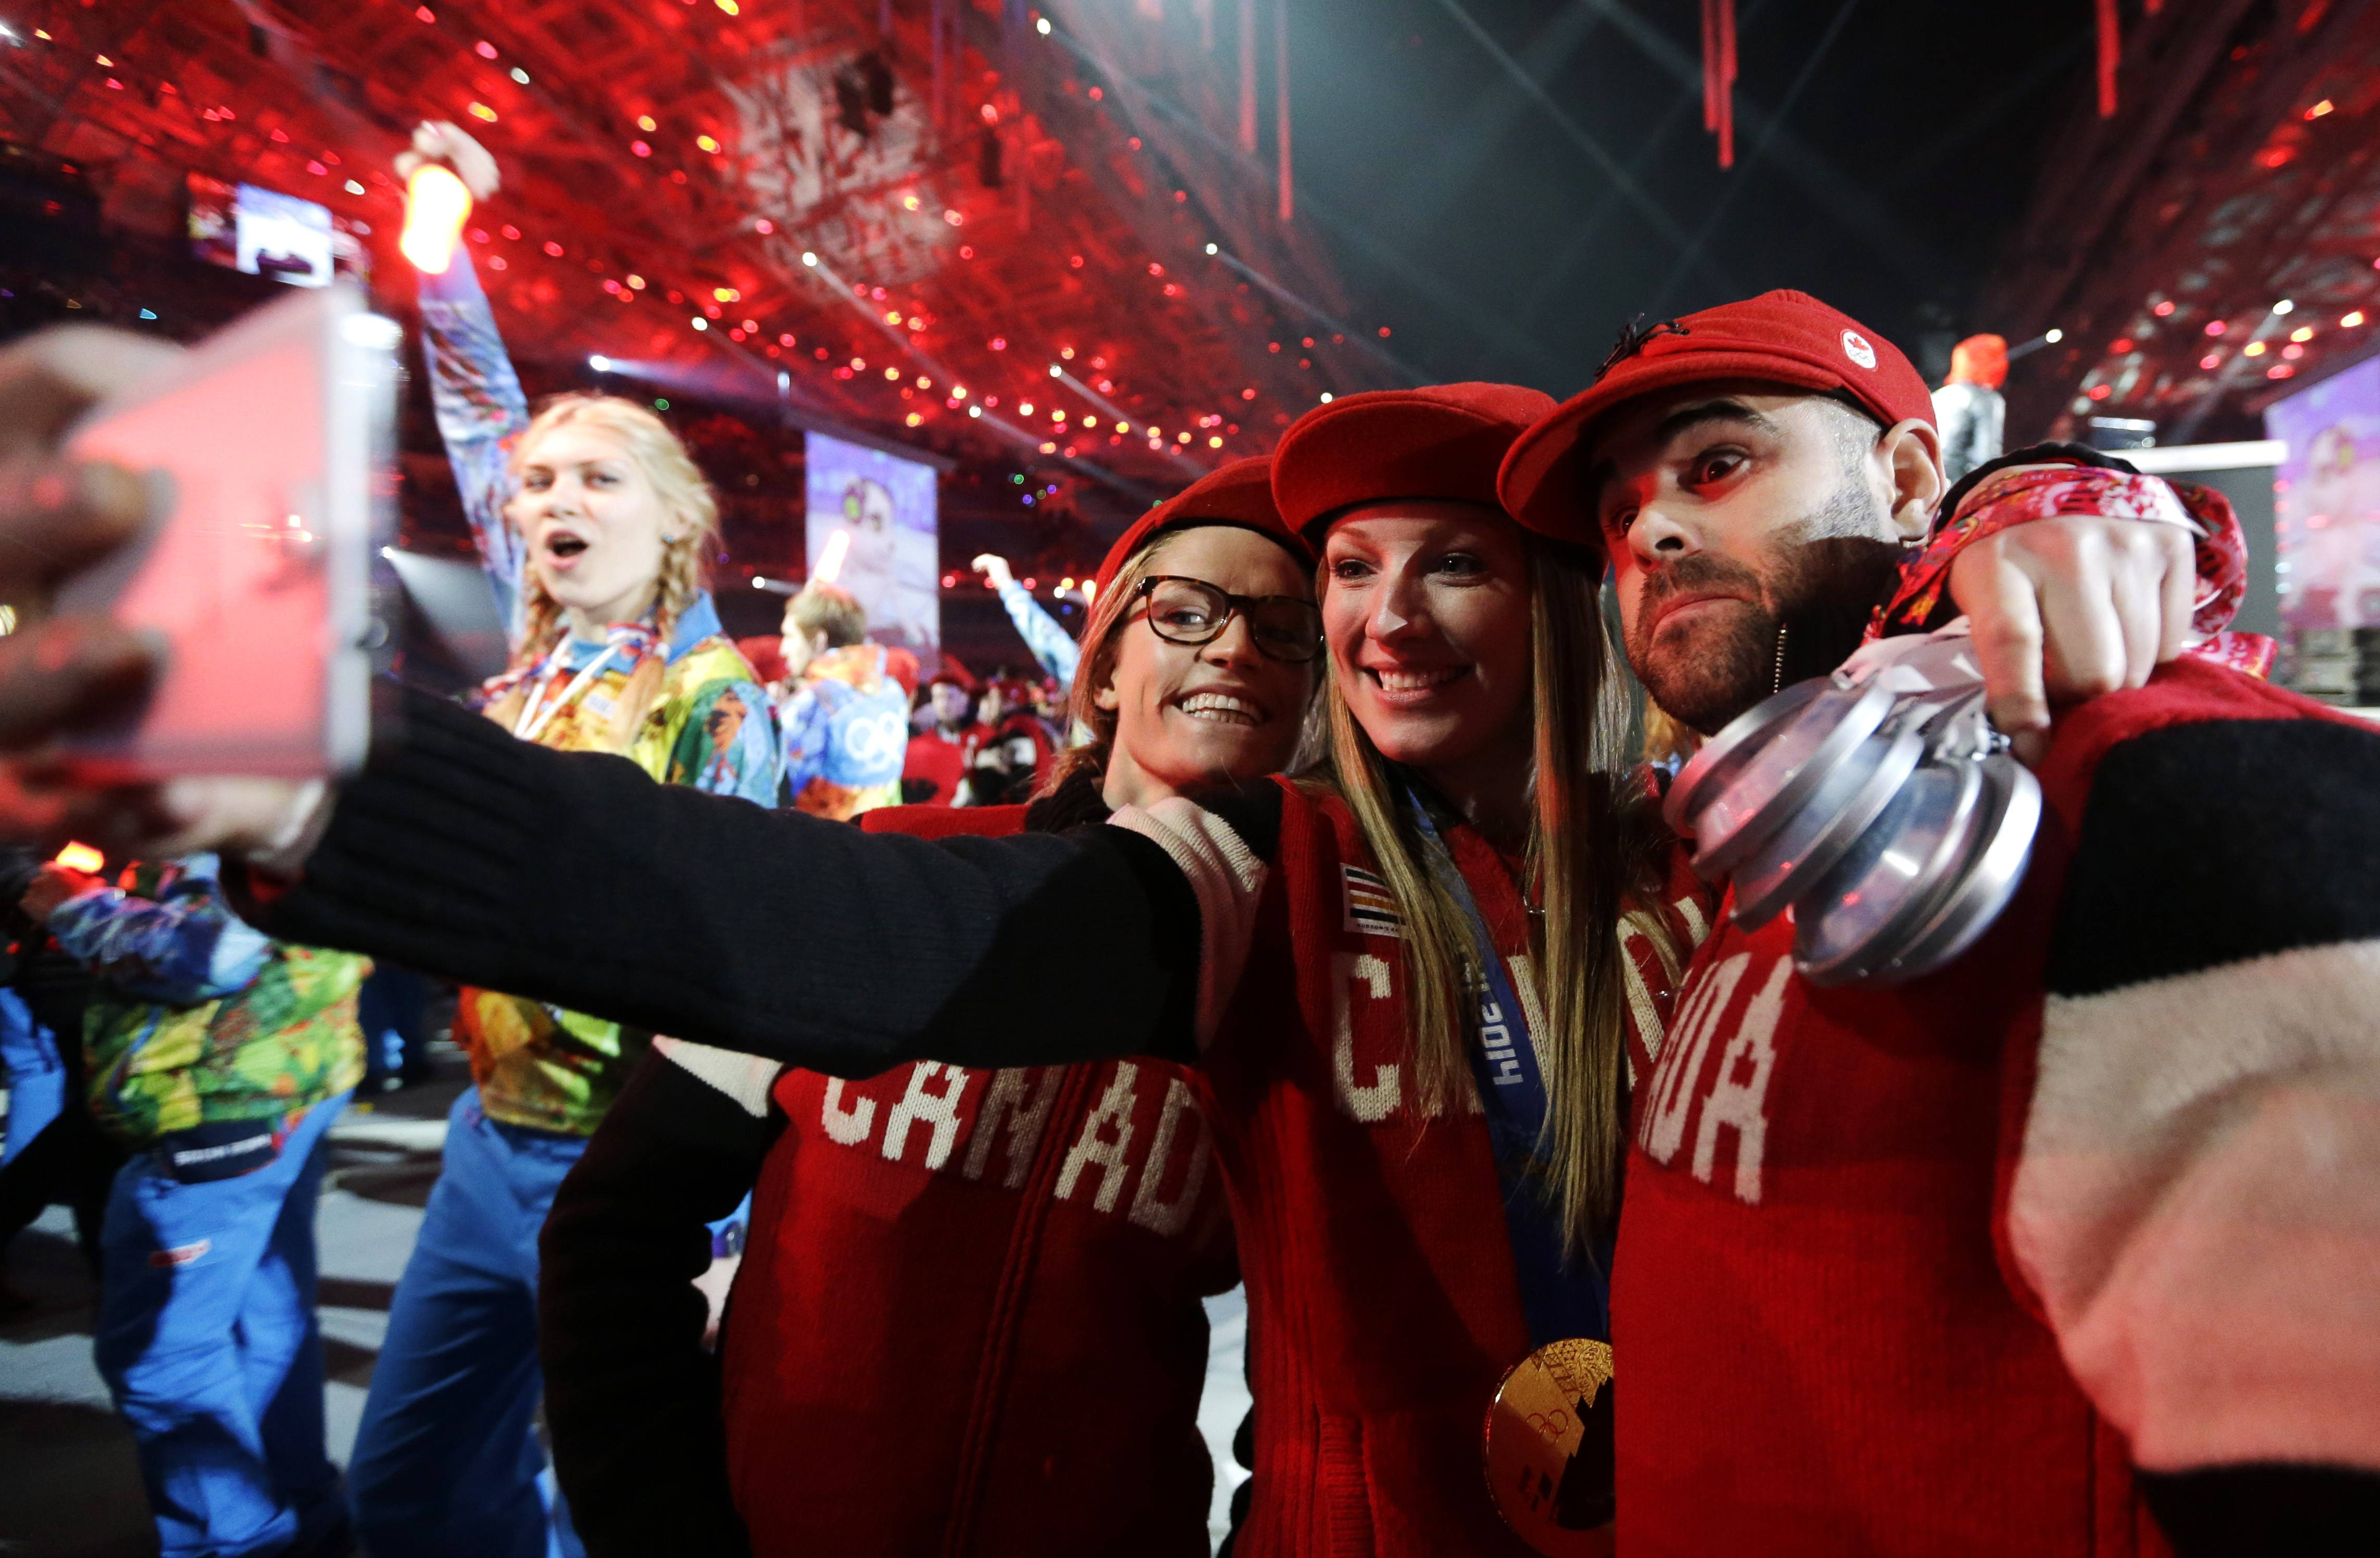 Canadian athletes take a self-portrait of themselves with a mobile phone during the closing ceremony of the 2014 Winter Olympics, Sunday, Feb. 23, 2014, in Sochi, Russia.